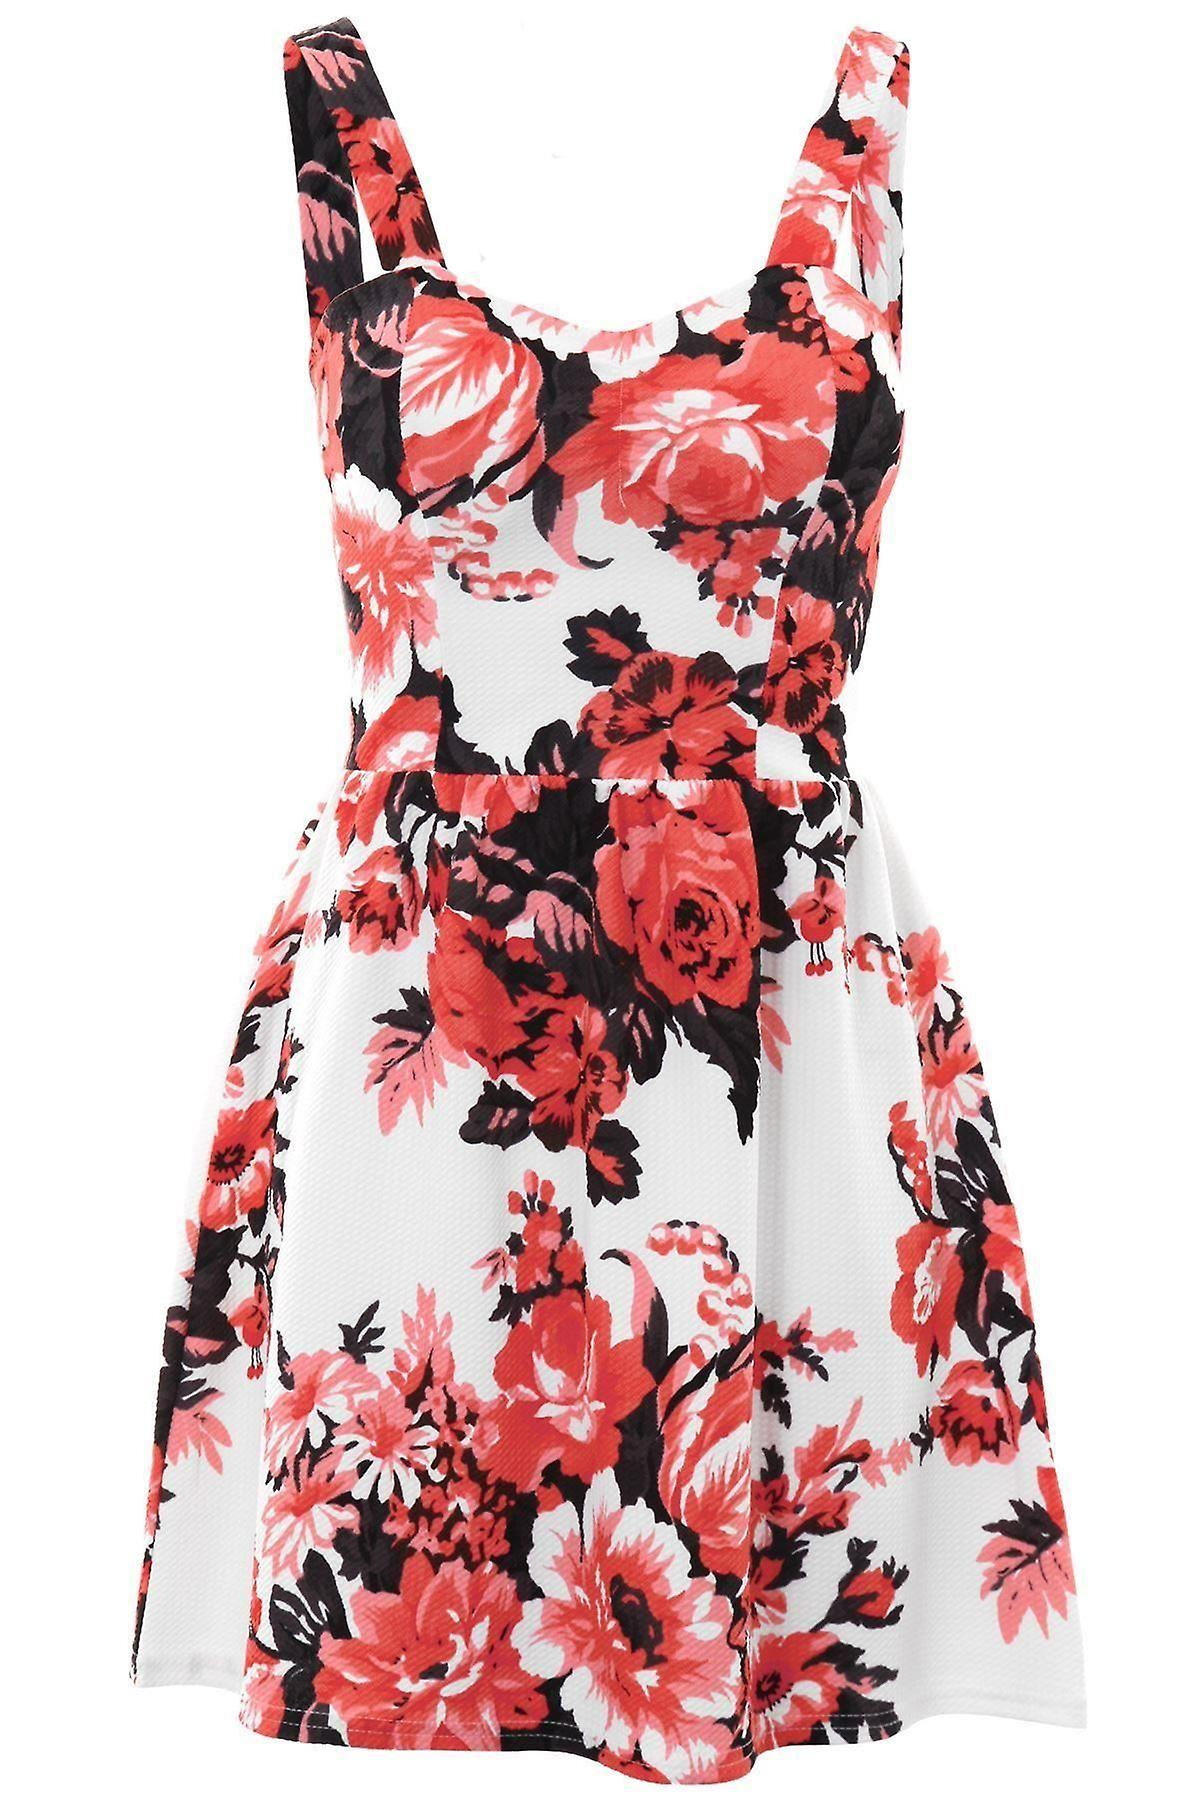 Ladies Sleeveless Padded Bra Cups Textured Crepe Floral Skater Flare Party Dress